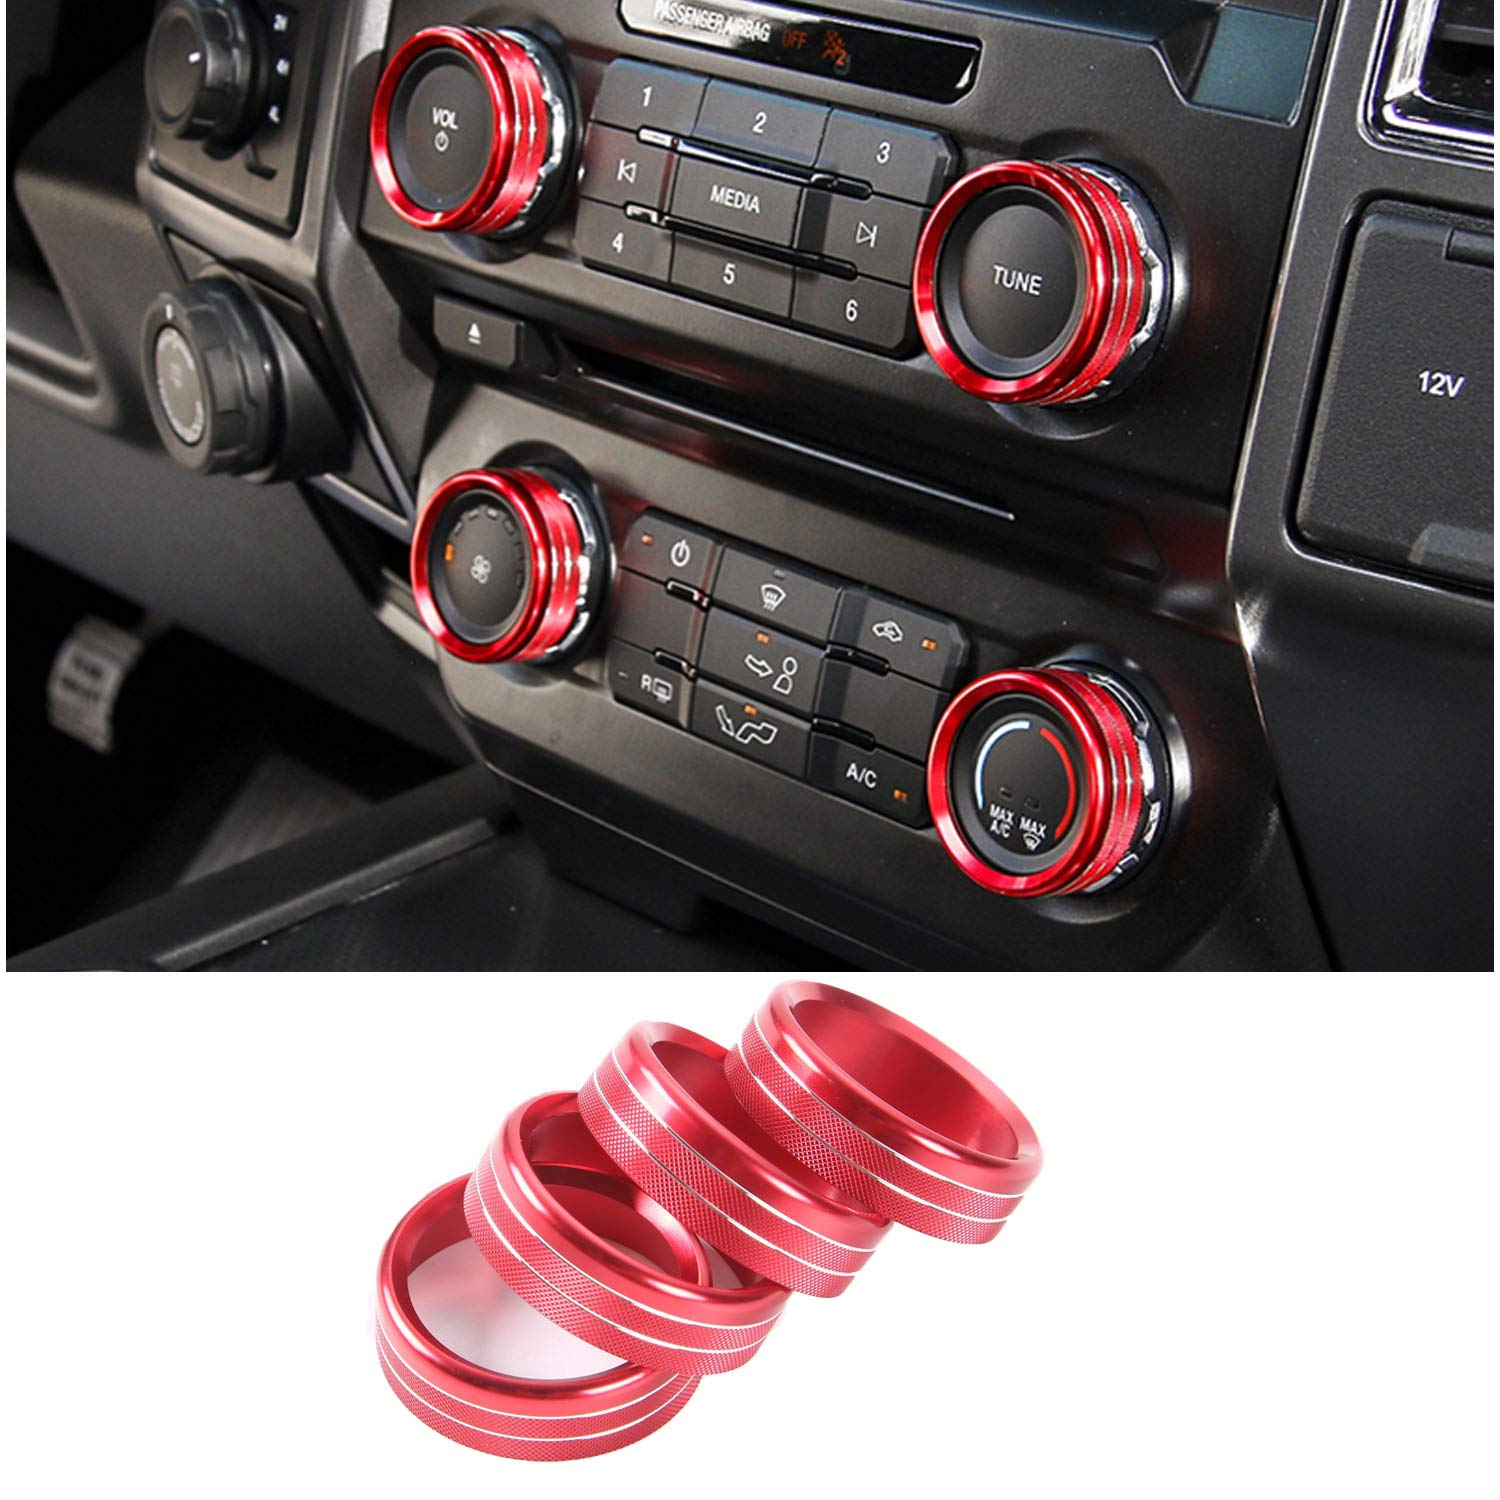 JOIN-WIT Inner Air Conditioner & Audio & Trailer & 4WD Switch Knob Ring Button Cover Trim for Ford F150 XLT 2016 2017 (6pcs Red) JOIN-WIT5